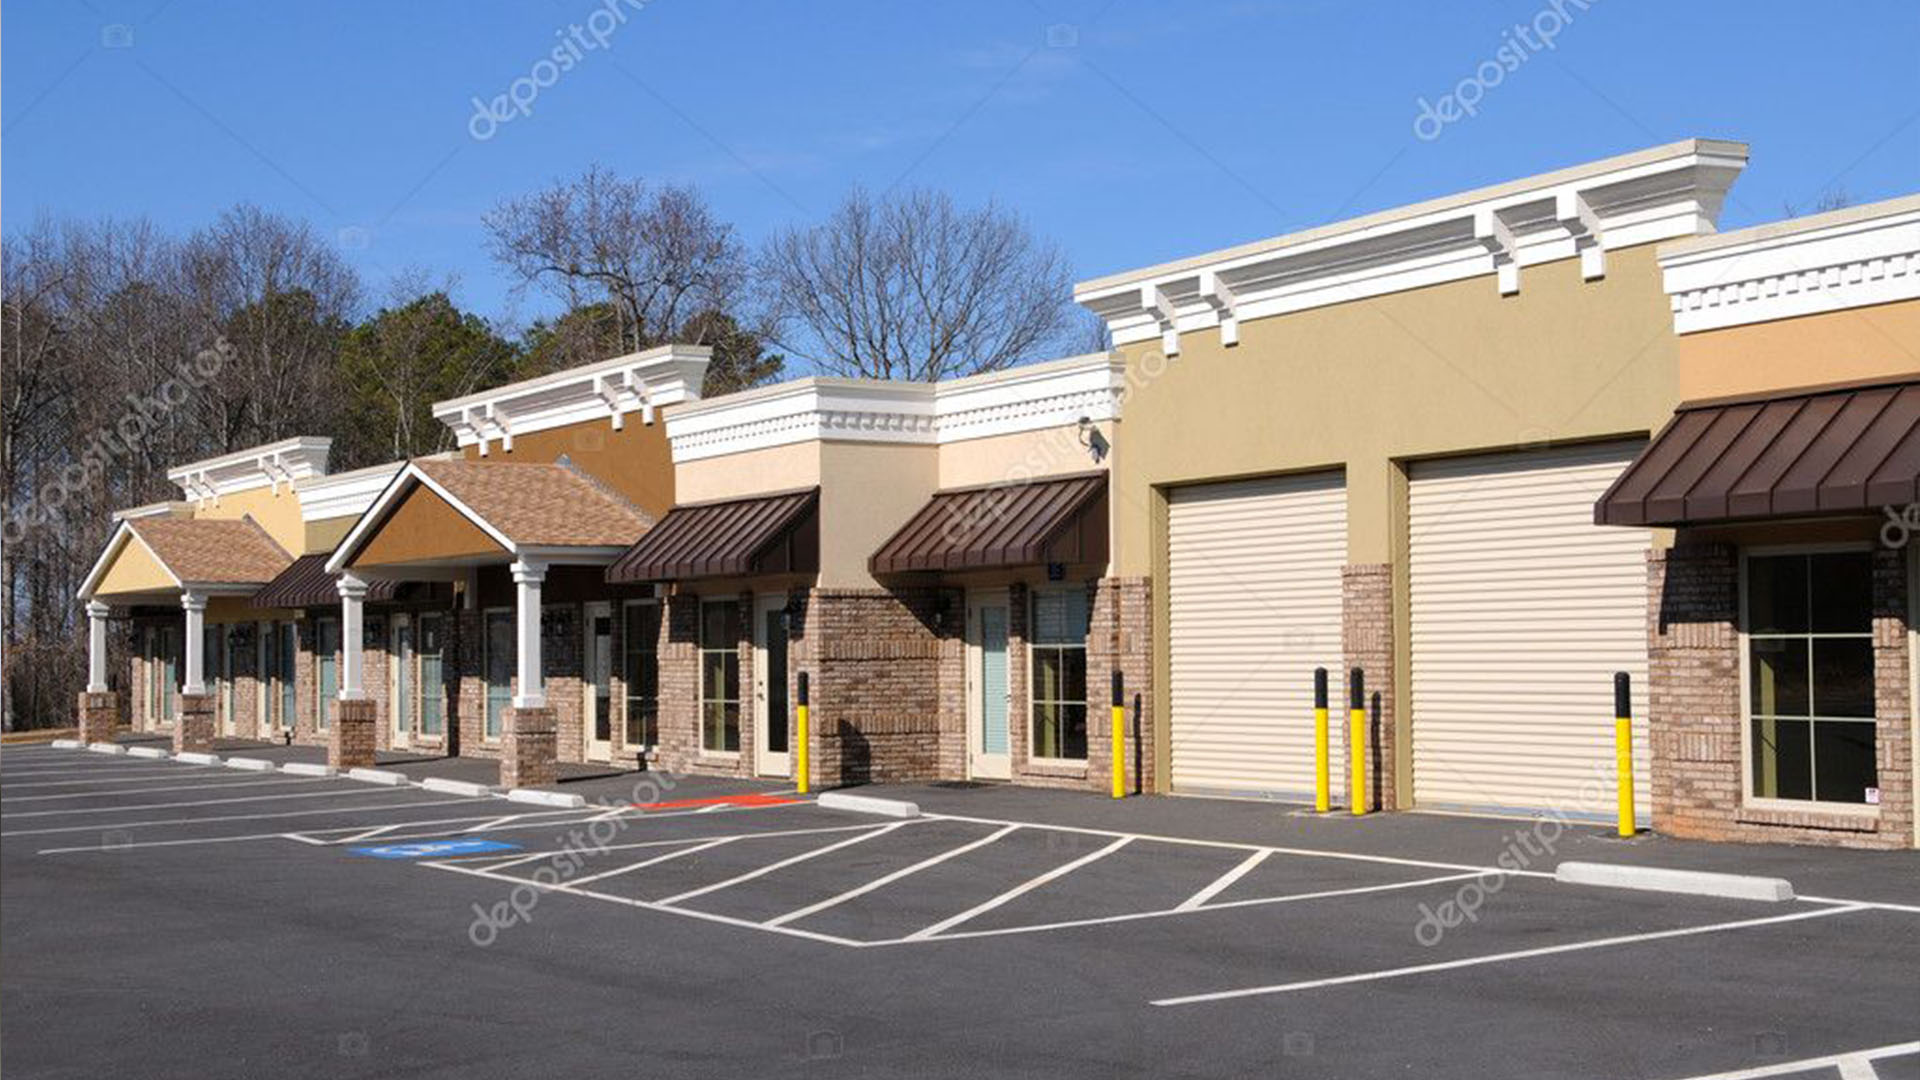 Commercial Roofing in Denver, Greeley, Longmont, Brighton CO, Erie CO